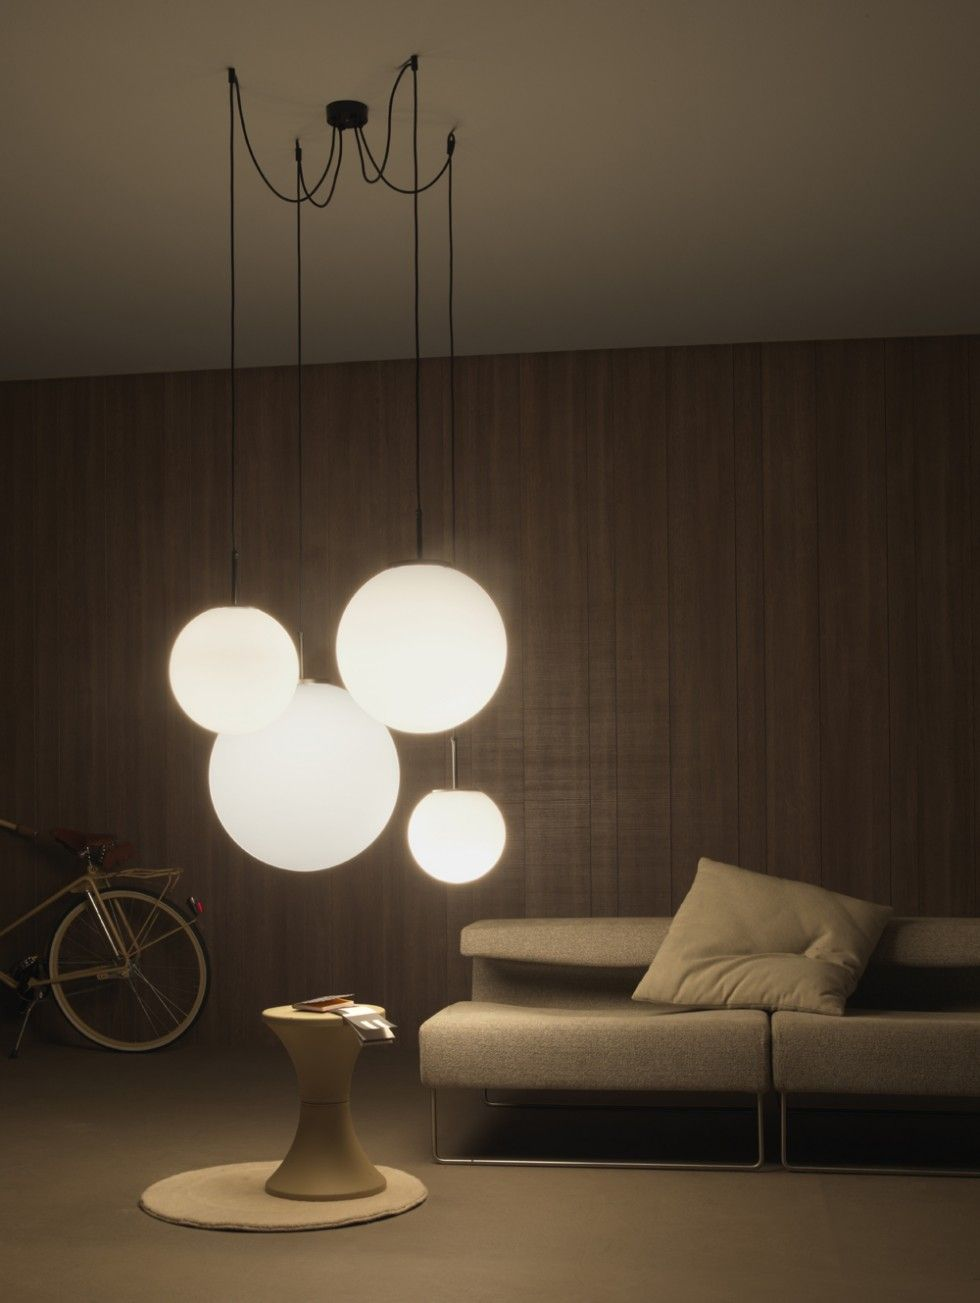 Vesoi palla suspension lamps. This is what I want